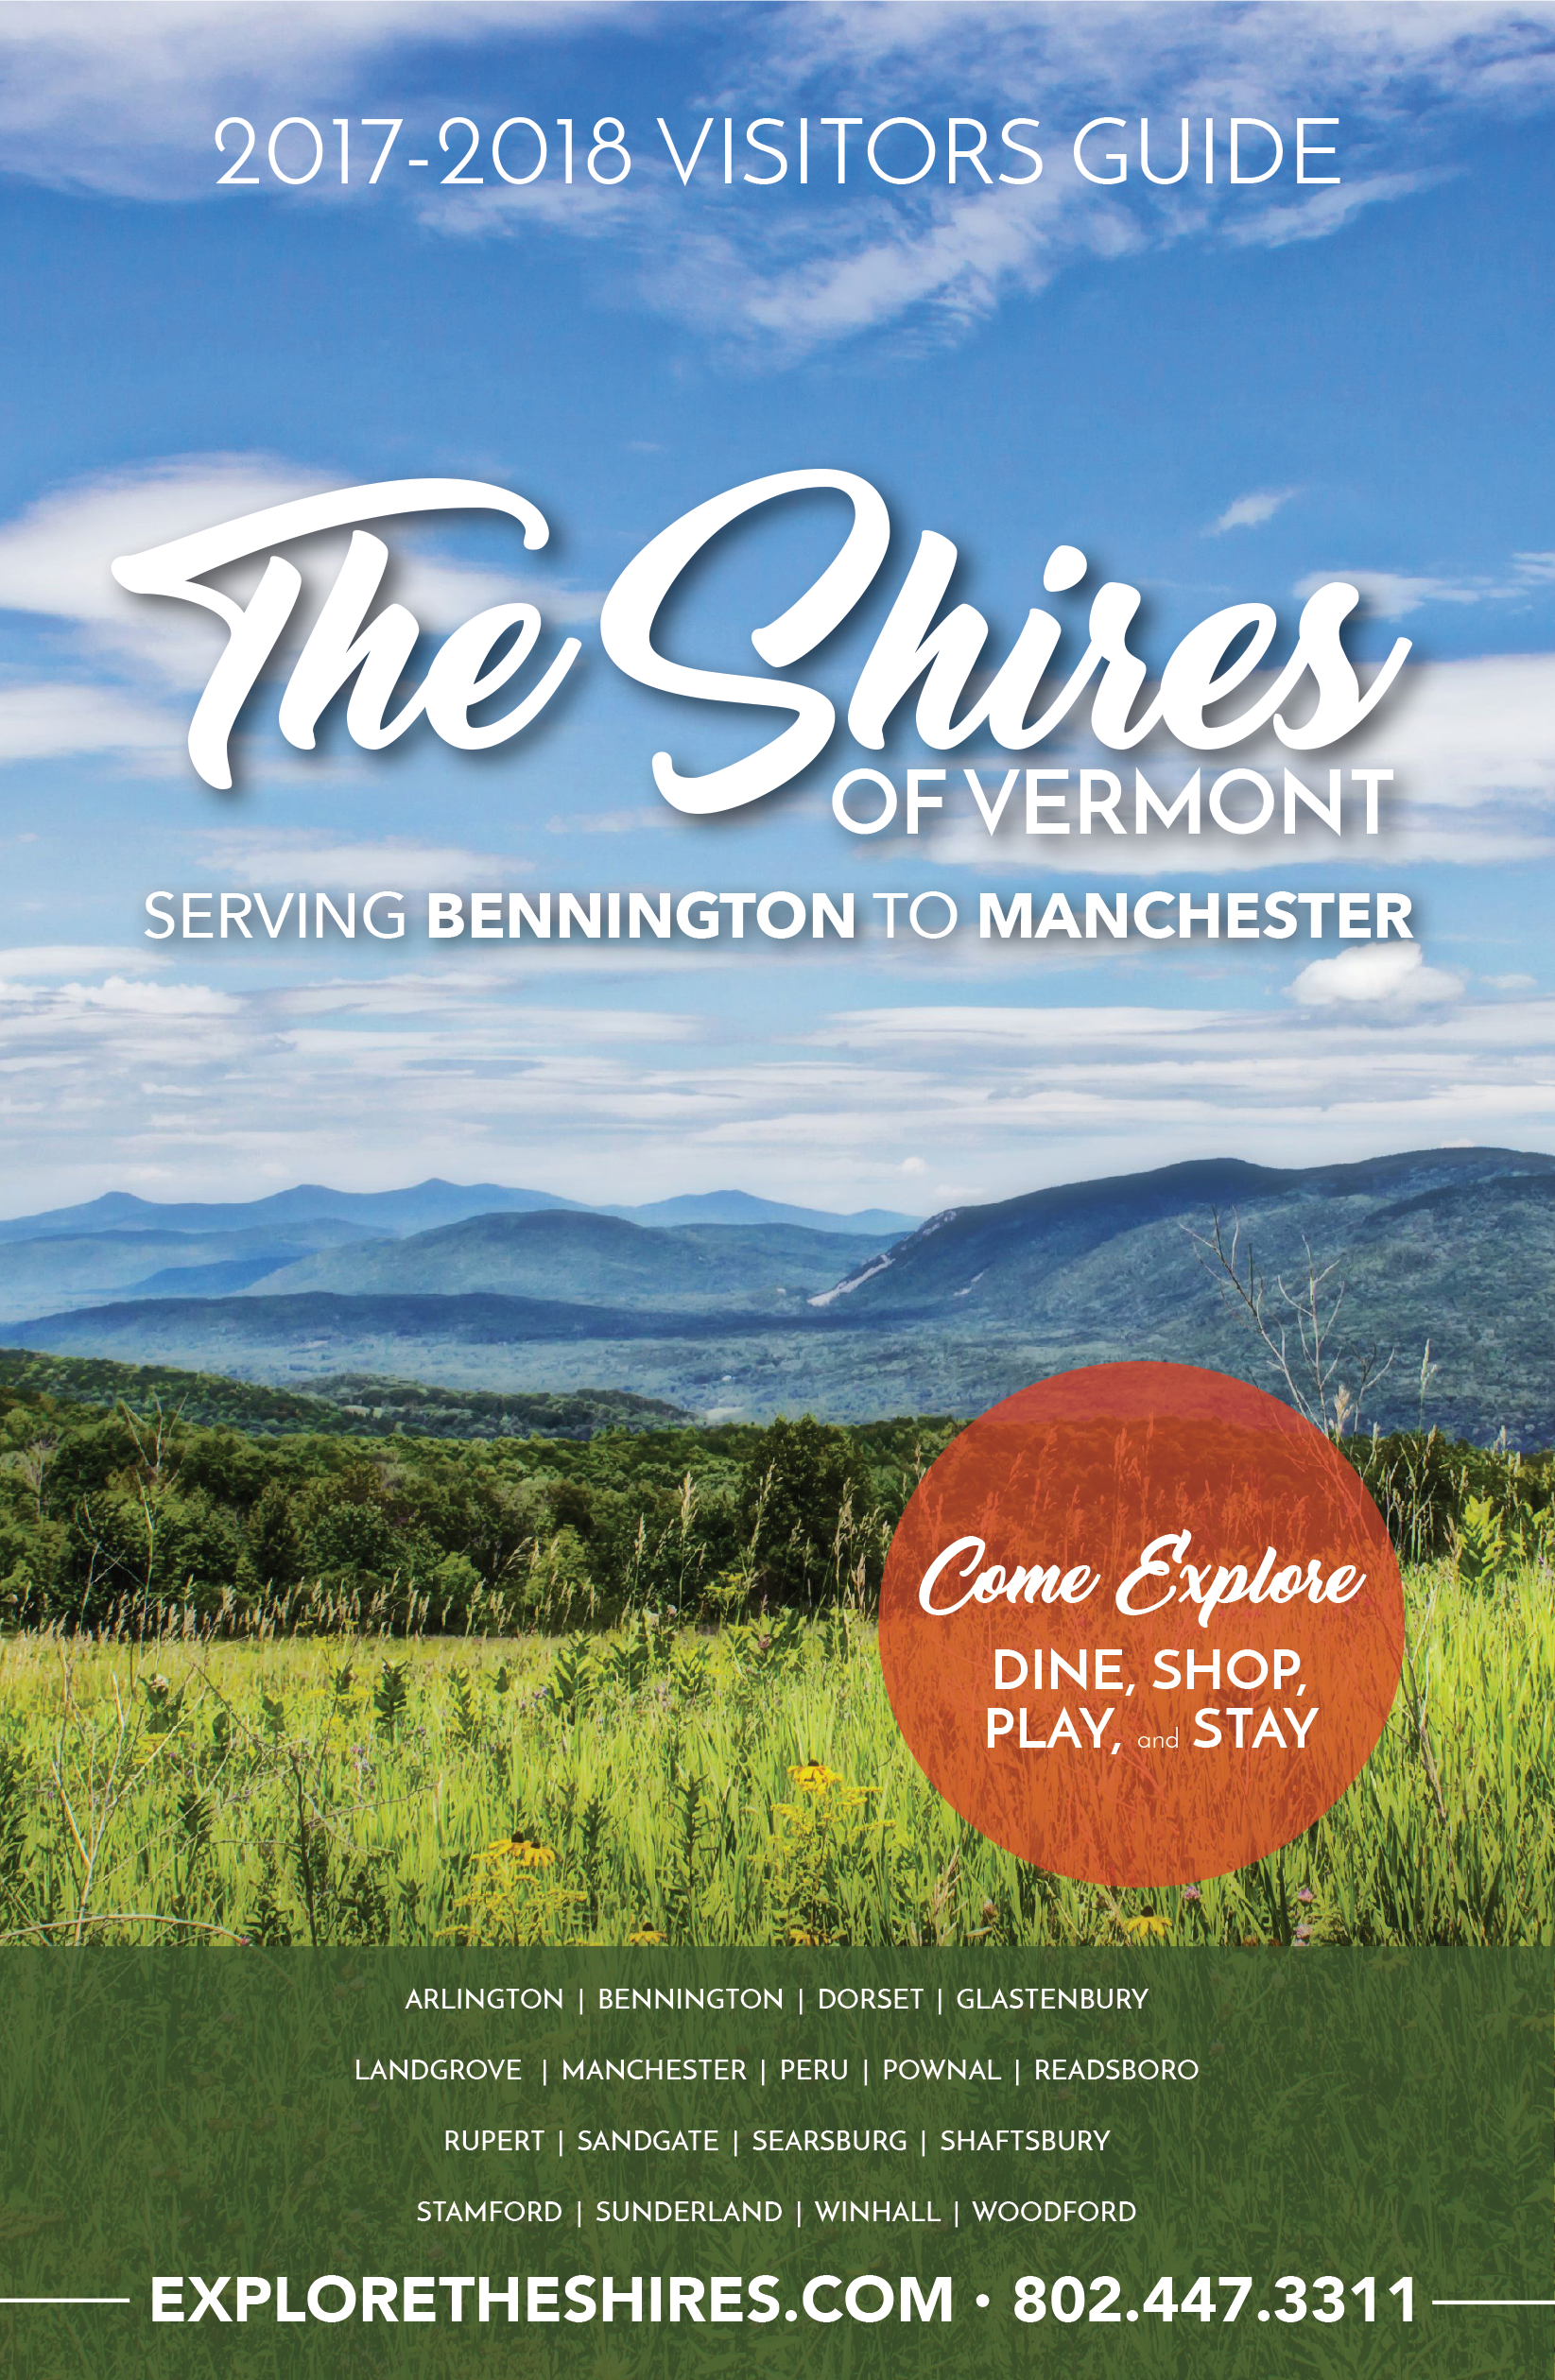 The-Shires-of-Vermont---Visitor's-Guide---2017-2018---cover.png